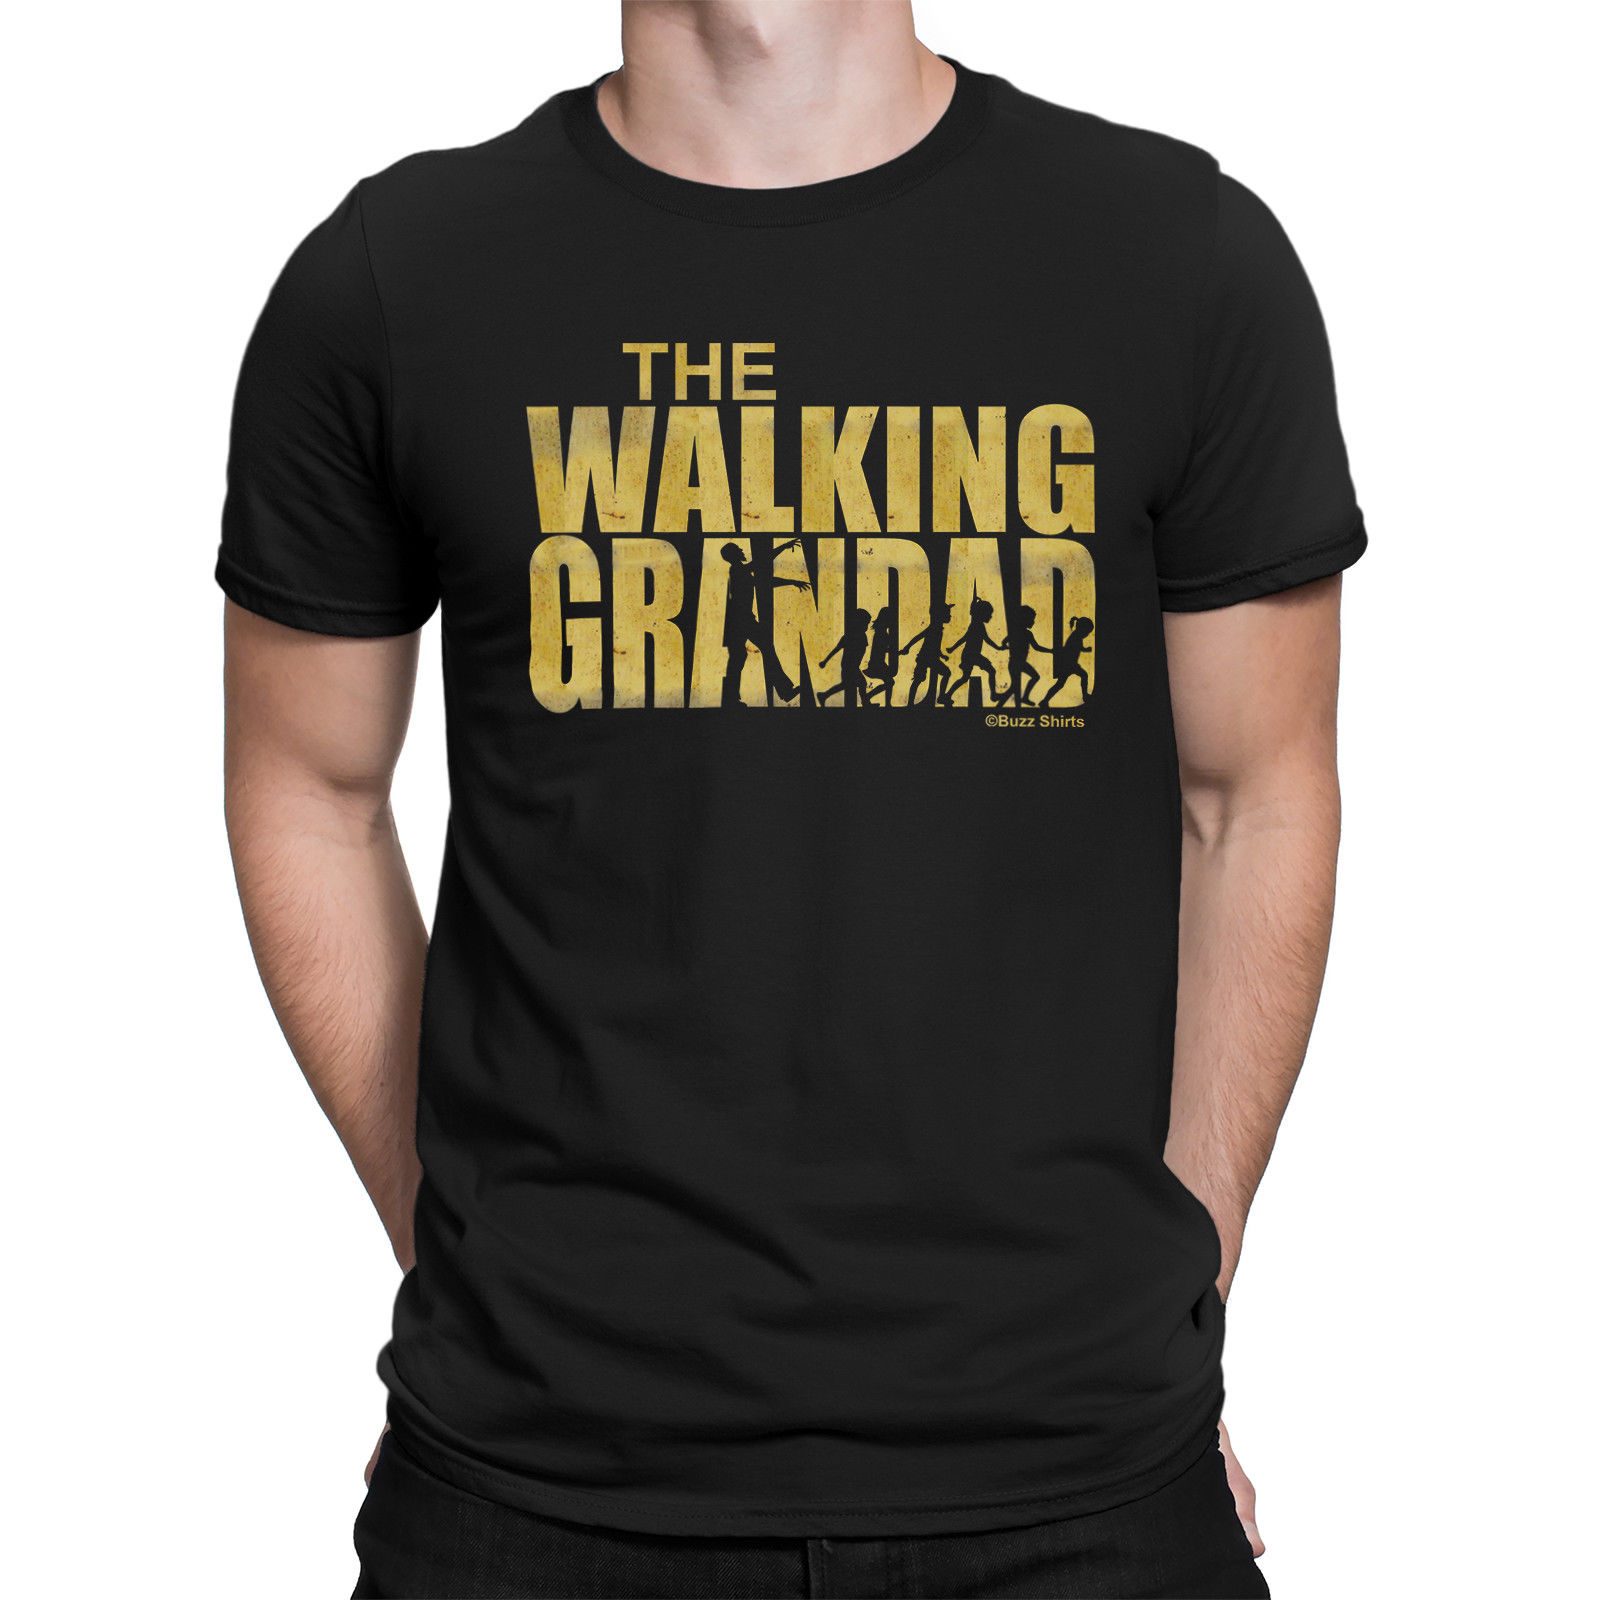 The WALKING GRANDAD Mens T-Shirt Dead Birthday Fathers Day Grandfather Hot New 2018 Summer Fashion T Shirts